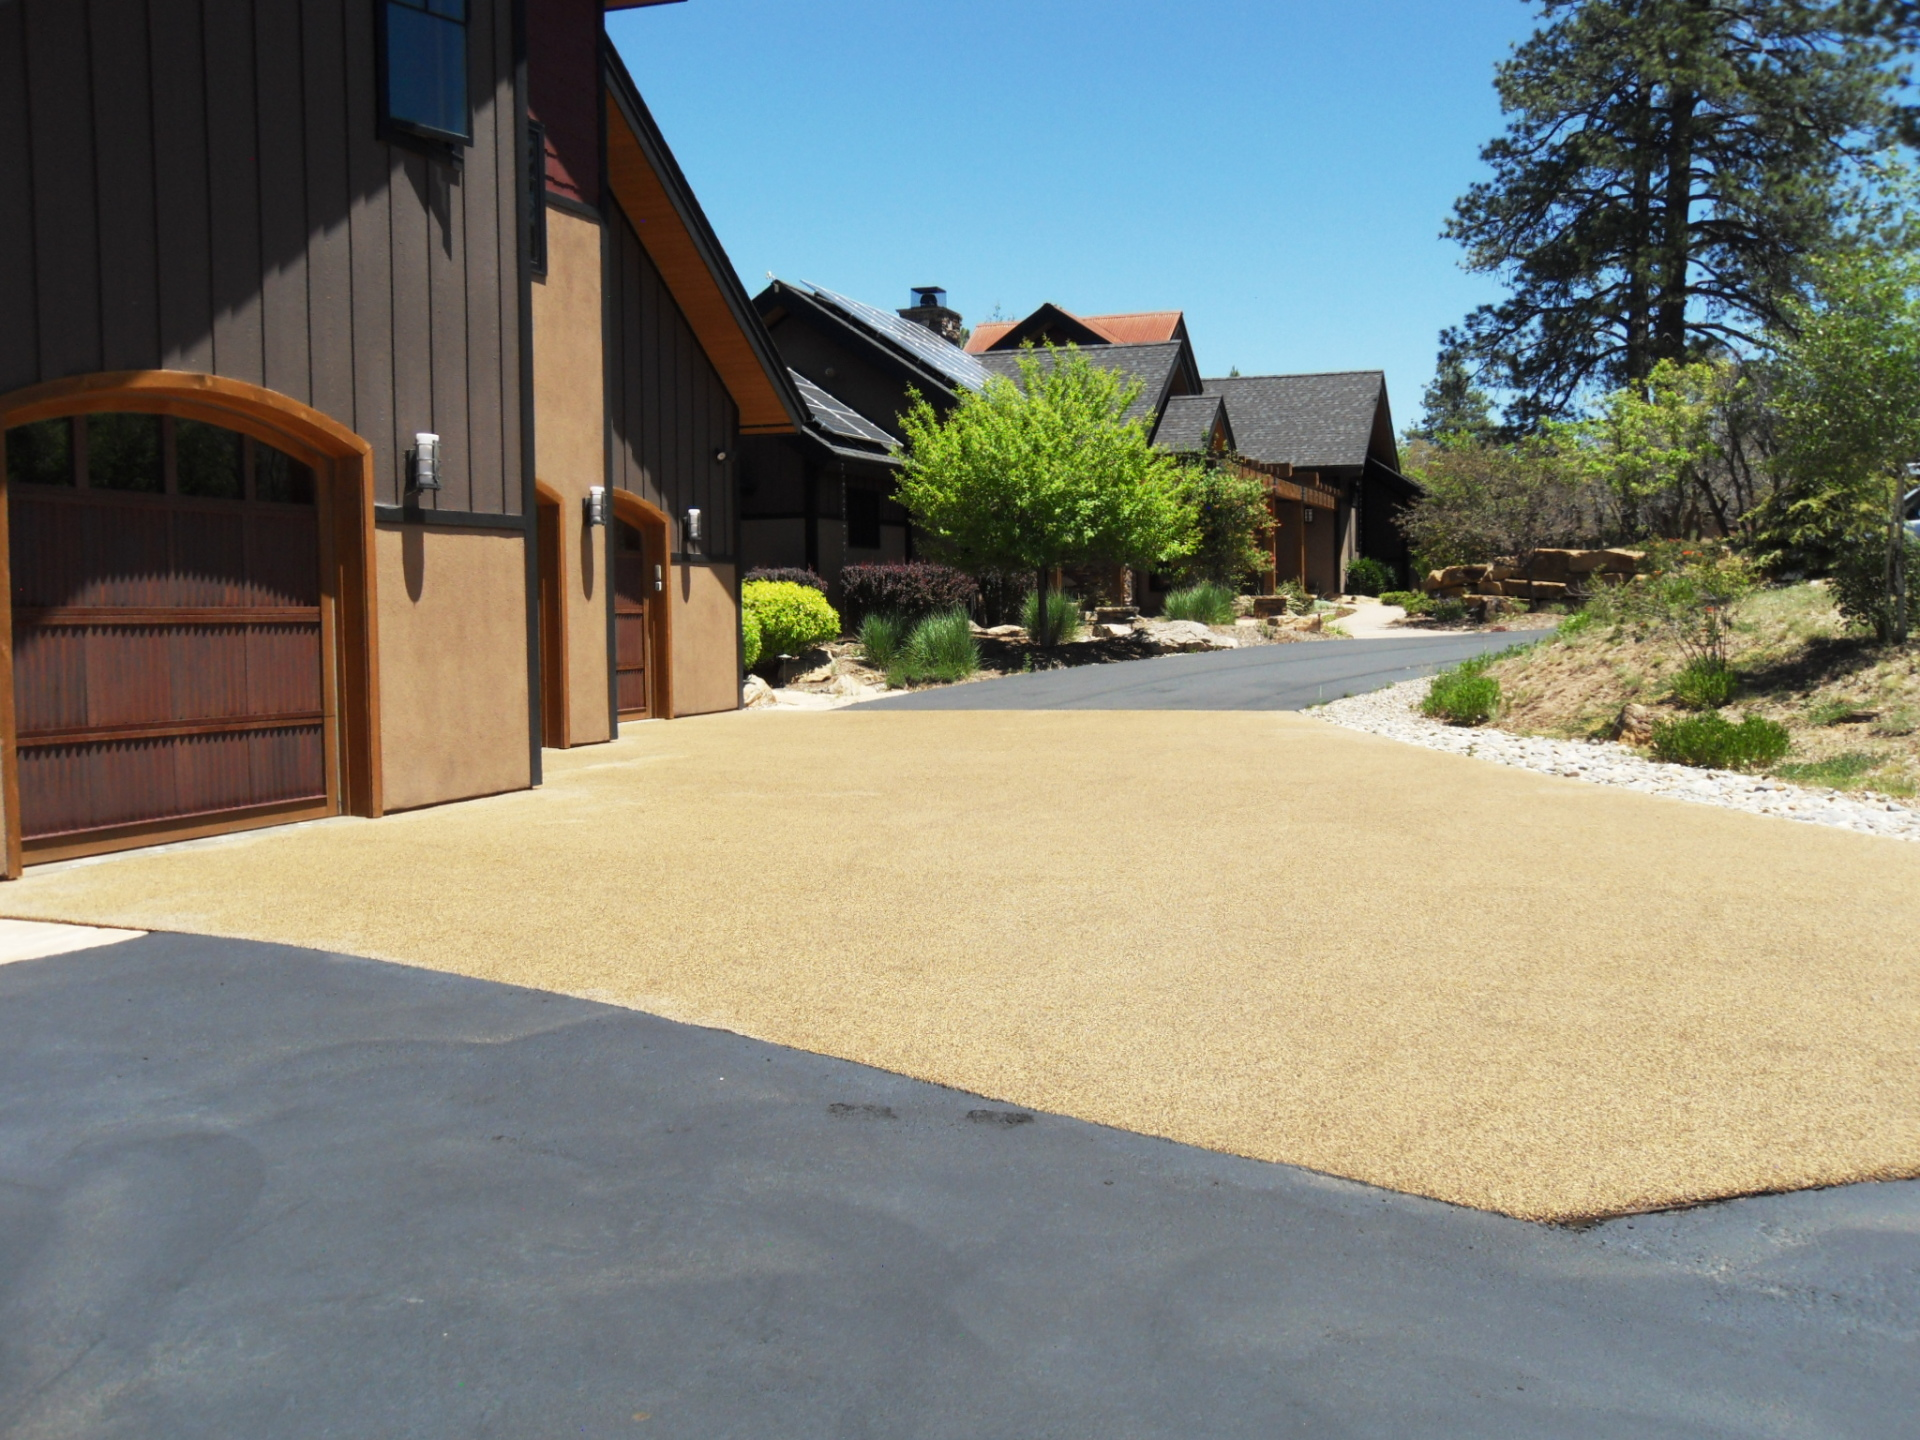 Driveways Four Corners Resurfacing Solutions